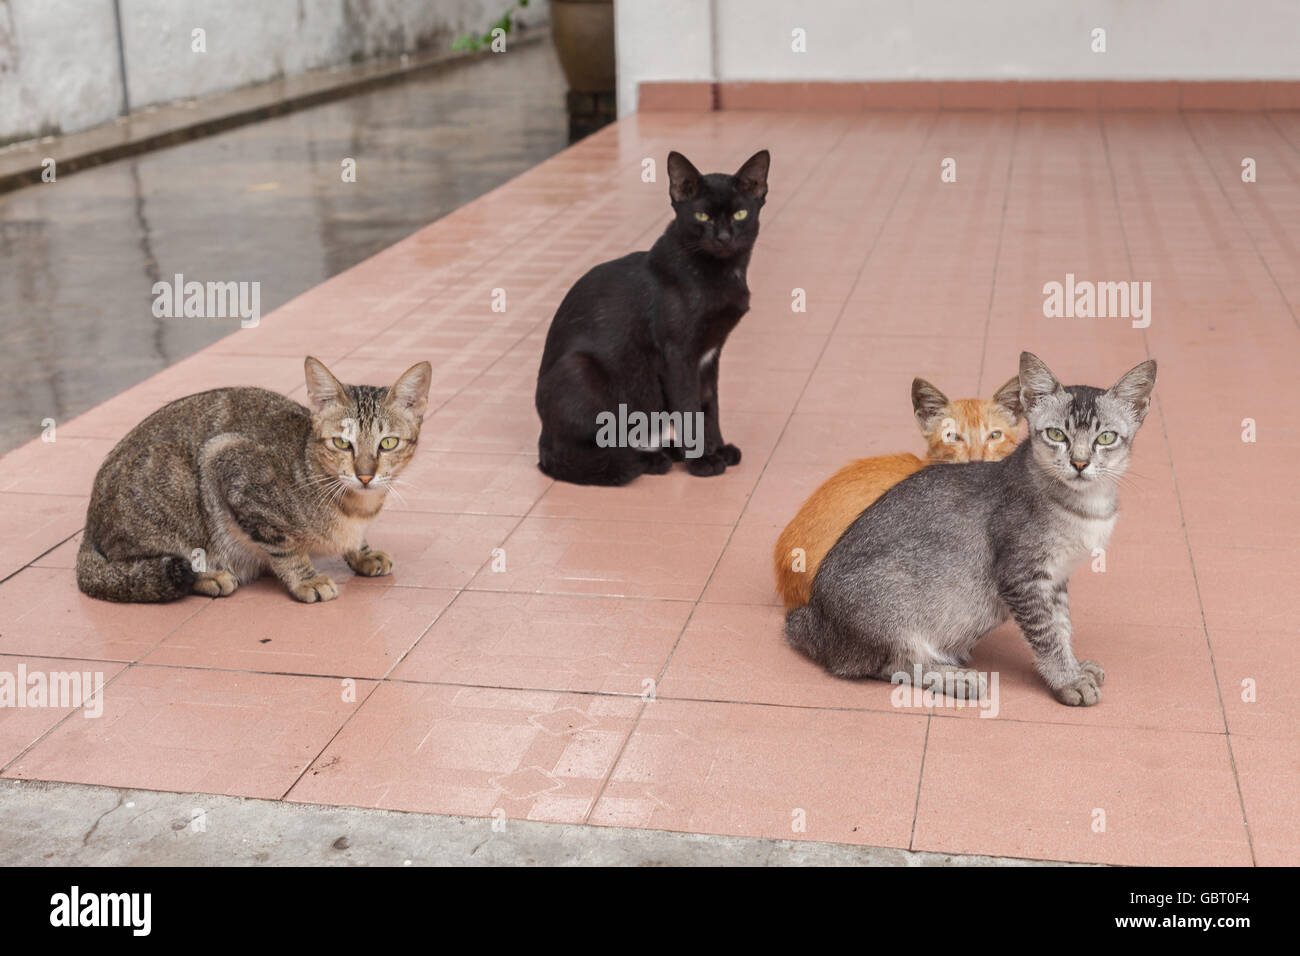 A group of cats staring in the camera - Stock Image